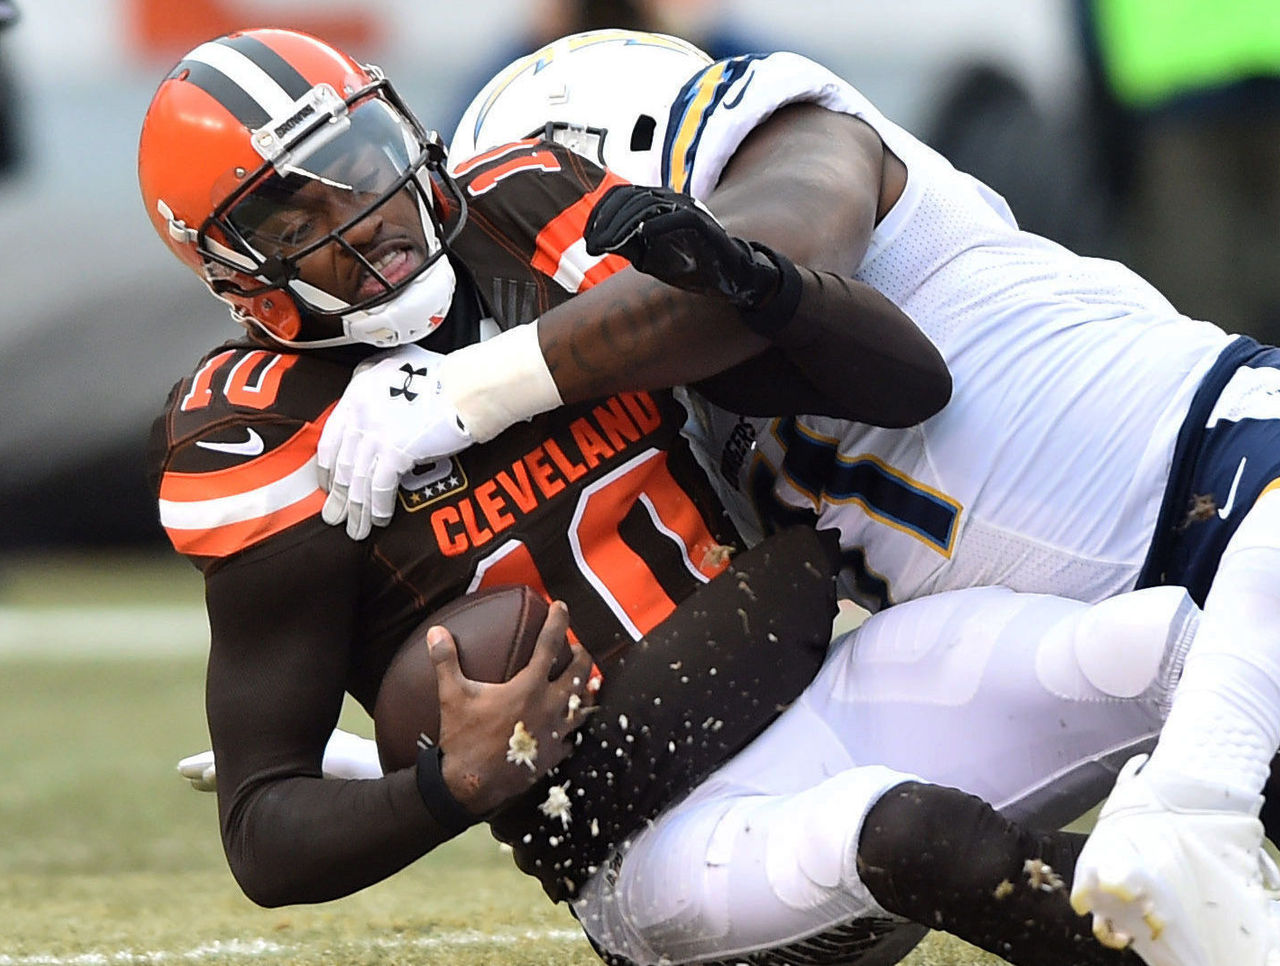 Cropped_2016-12-24t195128z_1143921031_nocid_rtrmadp_3_nfl-san-diego-chargers-at-cleveland-browns